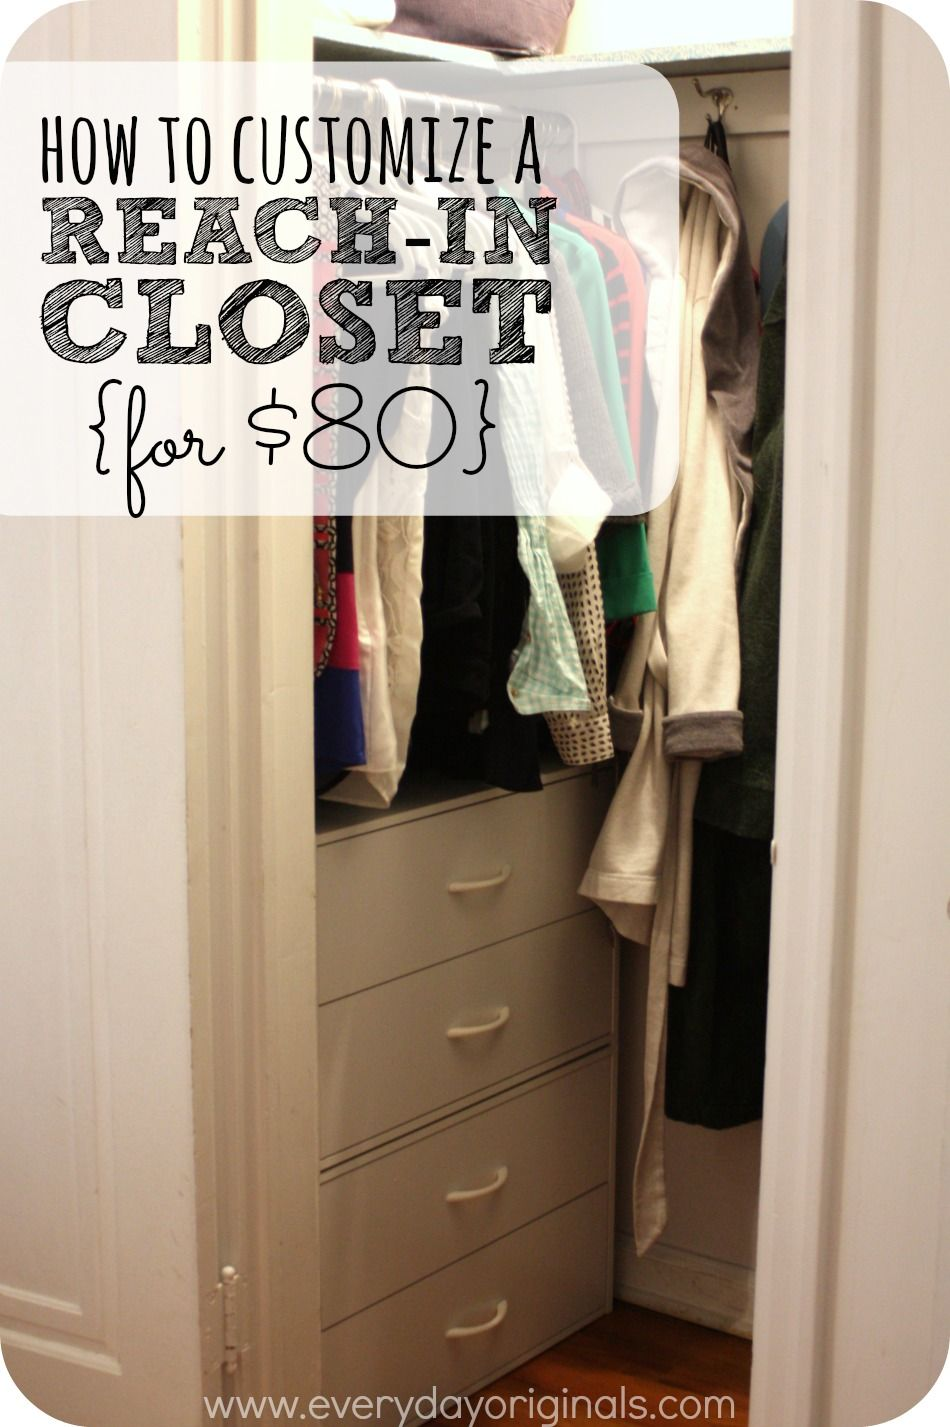 How To Customize A Reach In Closet For 80 Many Old Houses Just Have Small Closets Or Instead Of Enormous Walk Ins